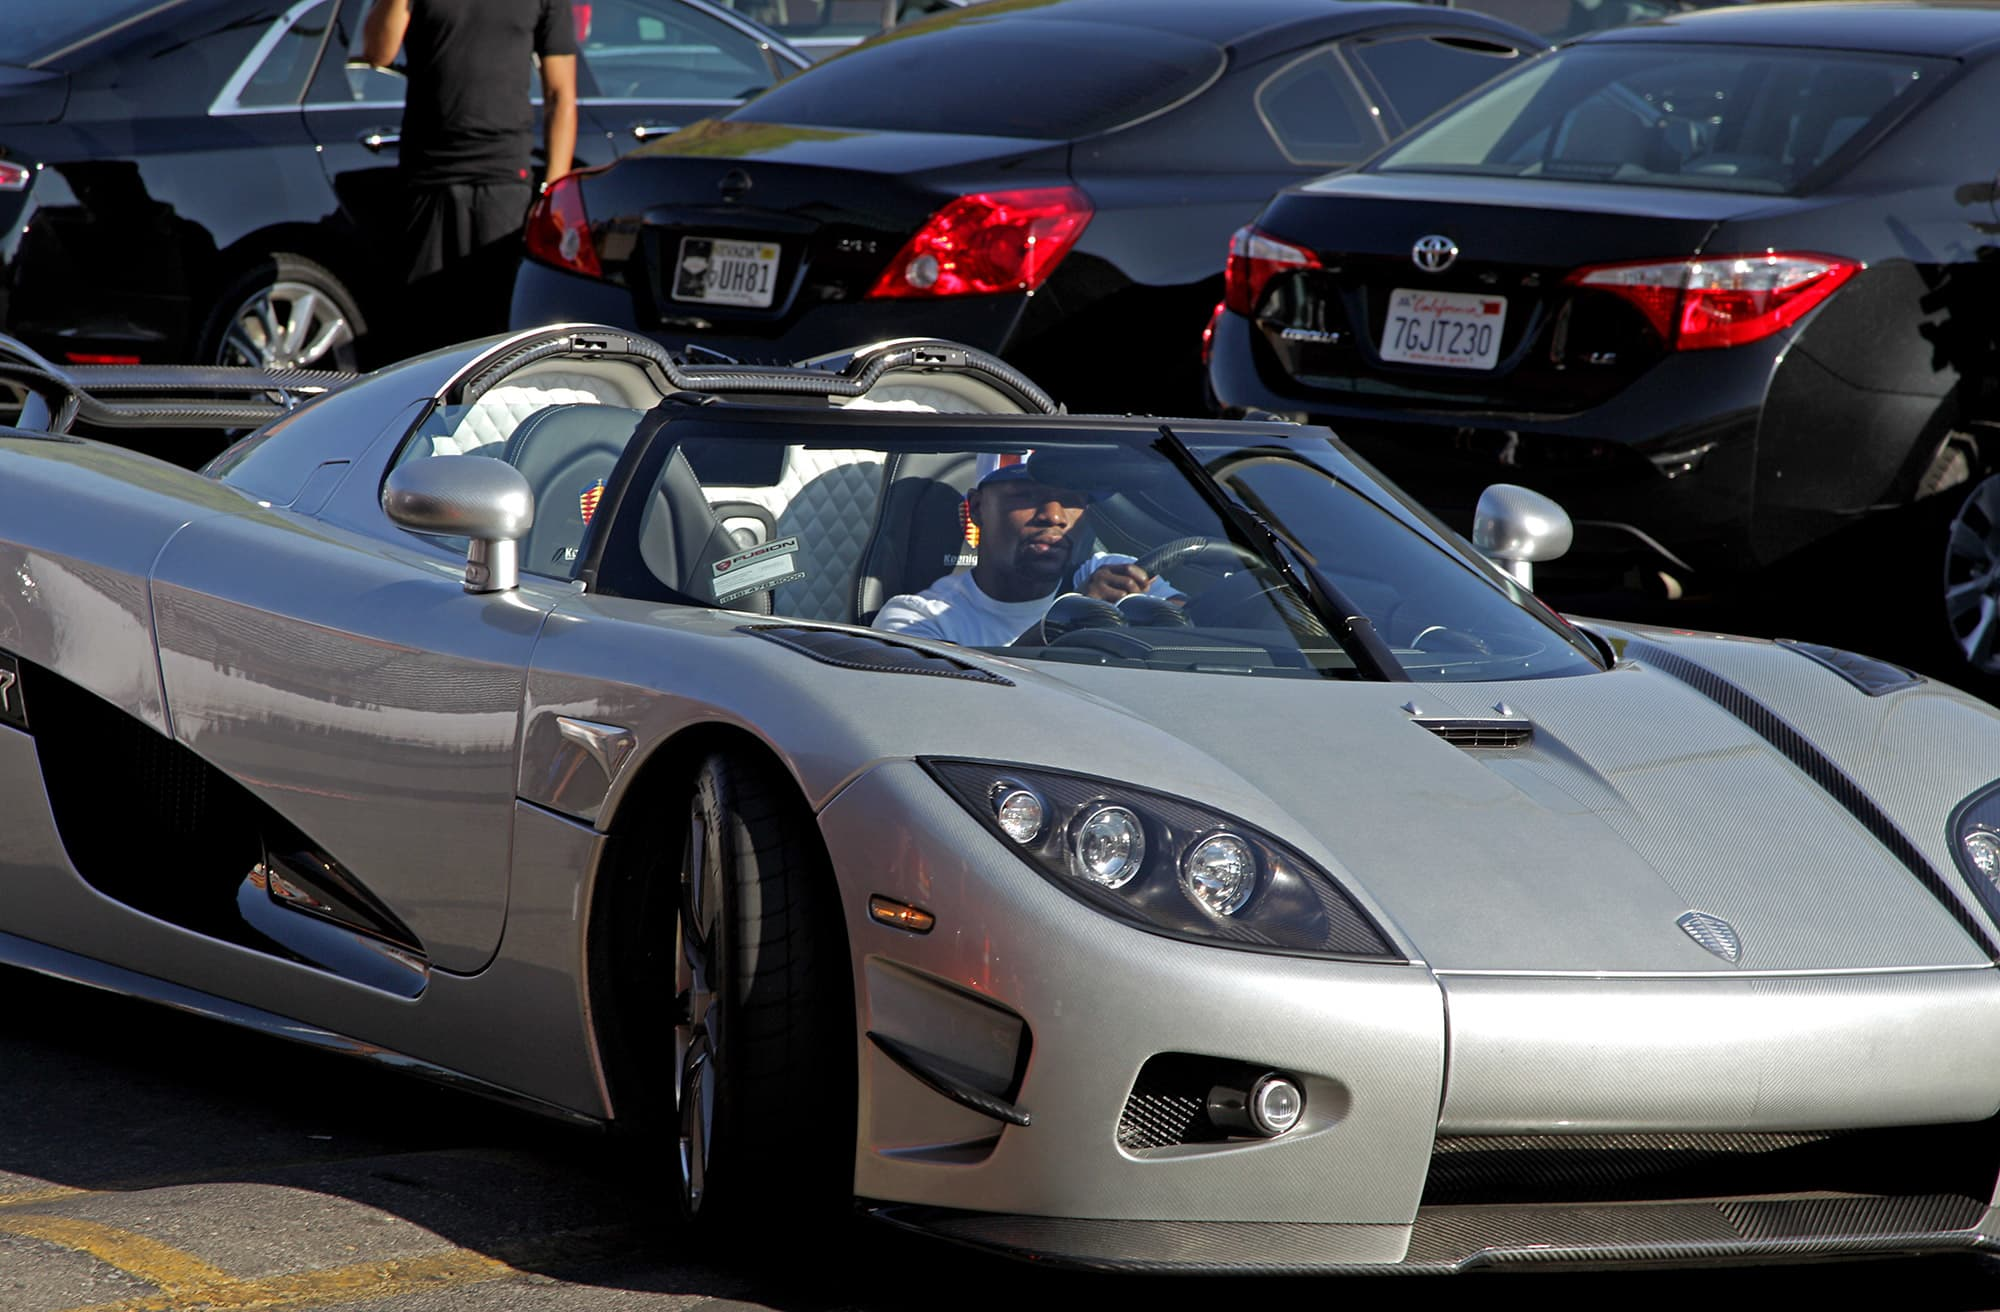 Koenigsegg Ccxr Trevita >> A Look At The Koenigsegg Ccxr Trevita Once Owned By Floyd Mayweather